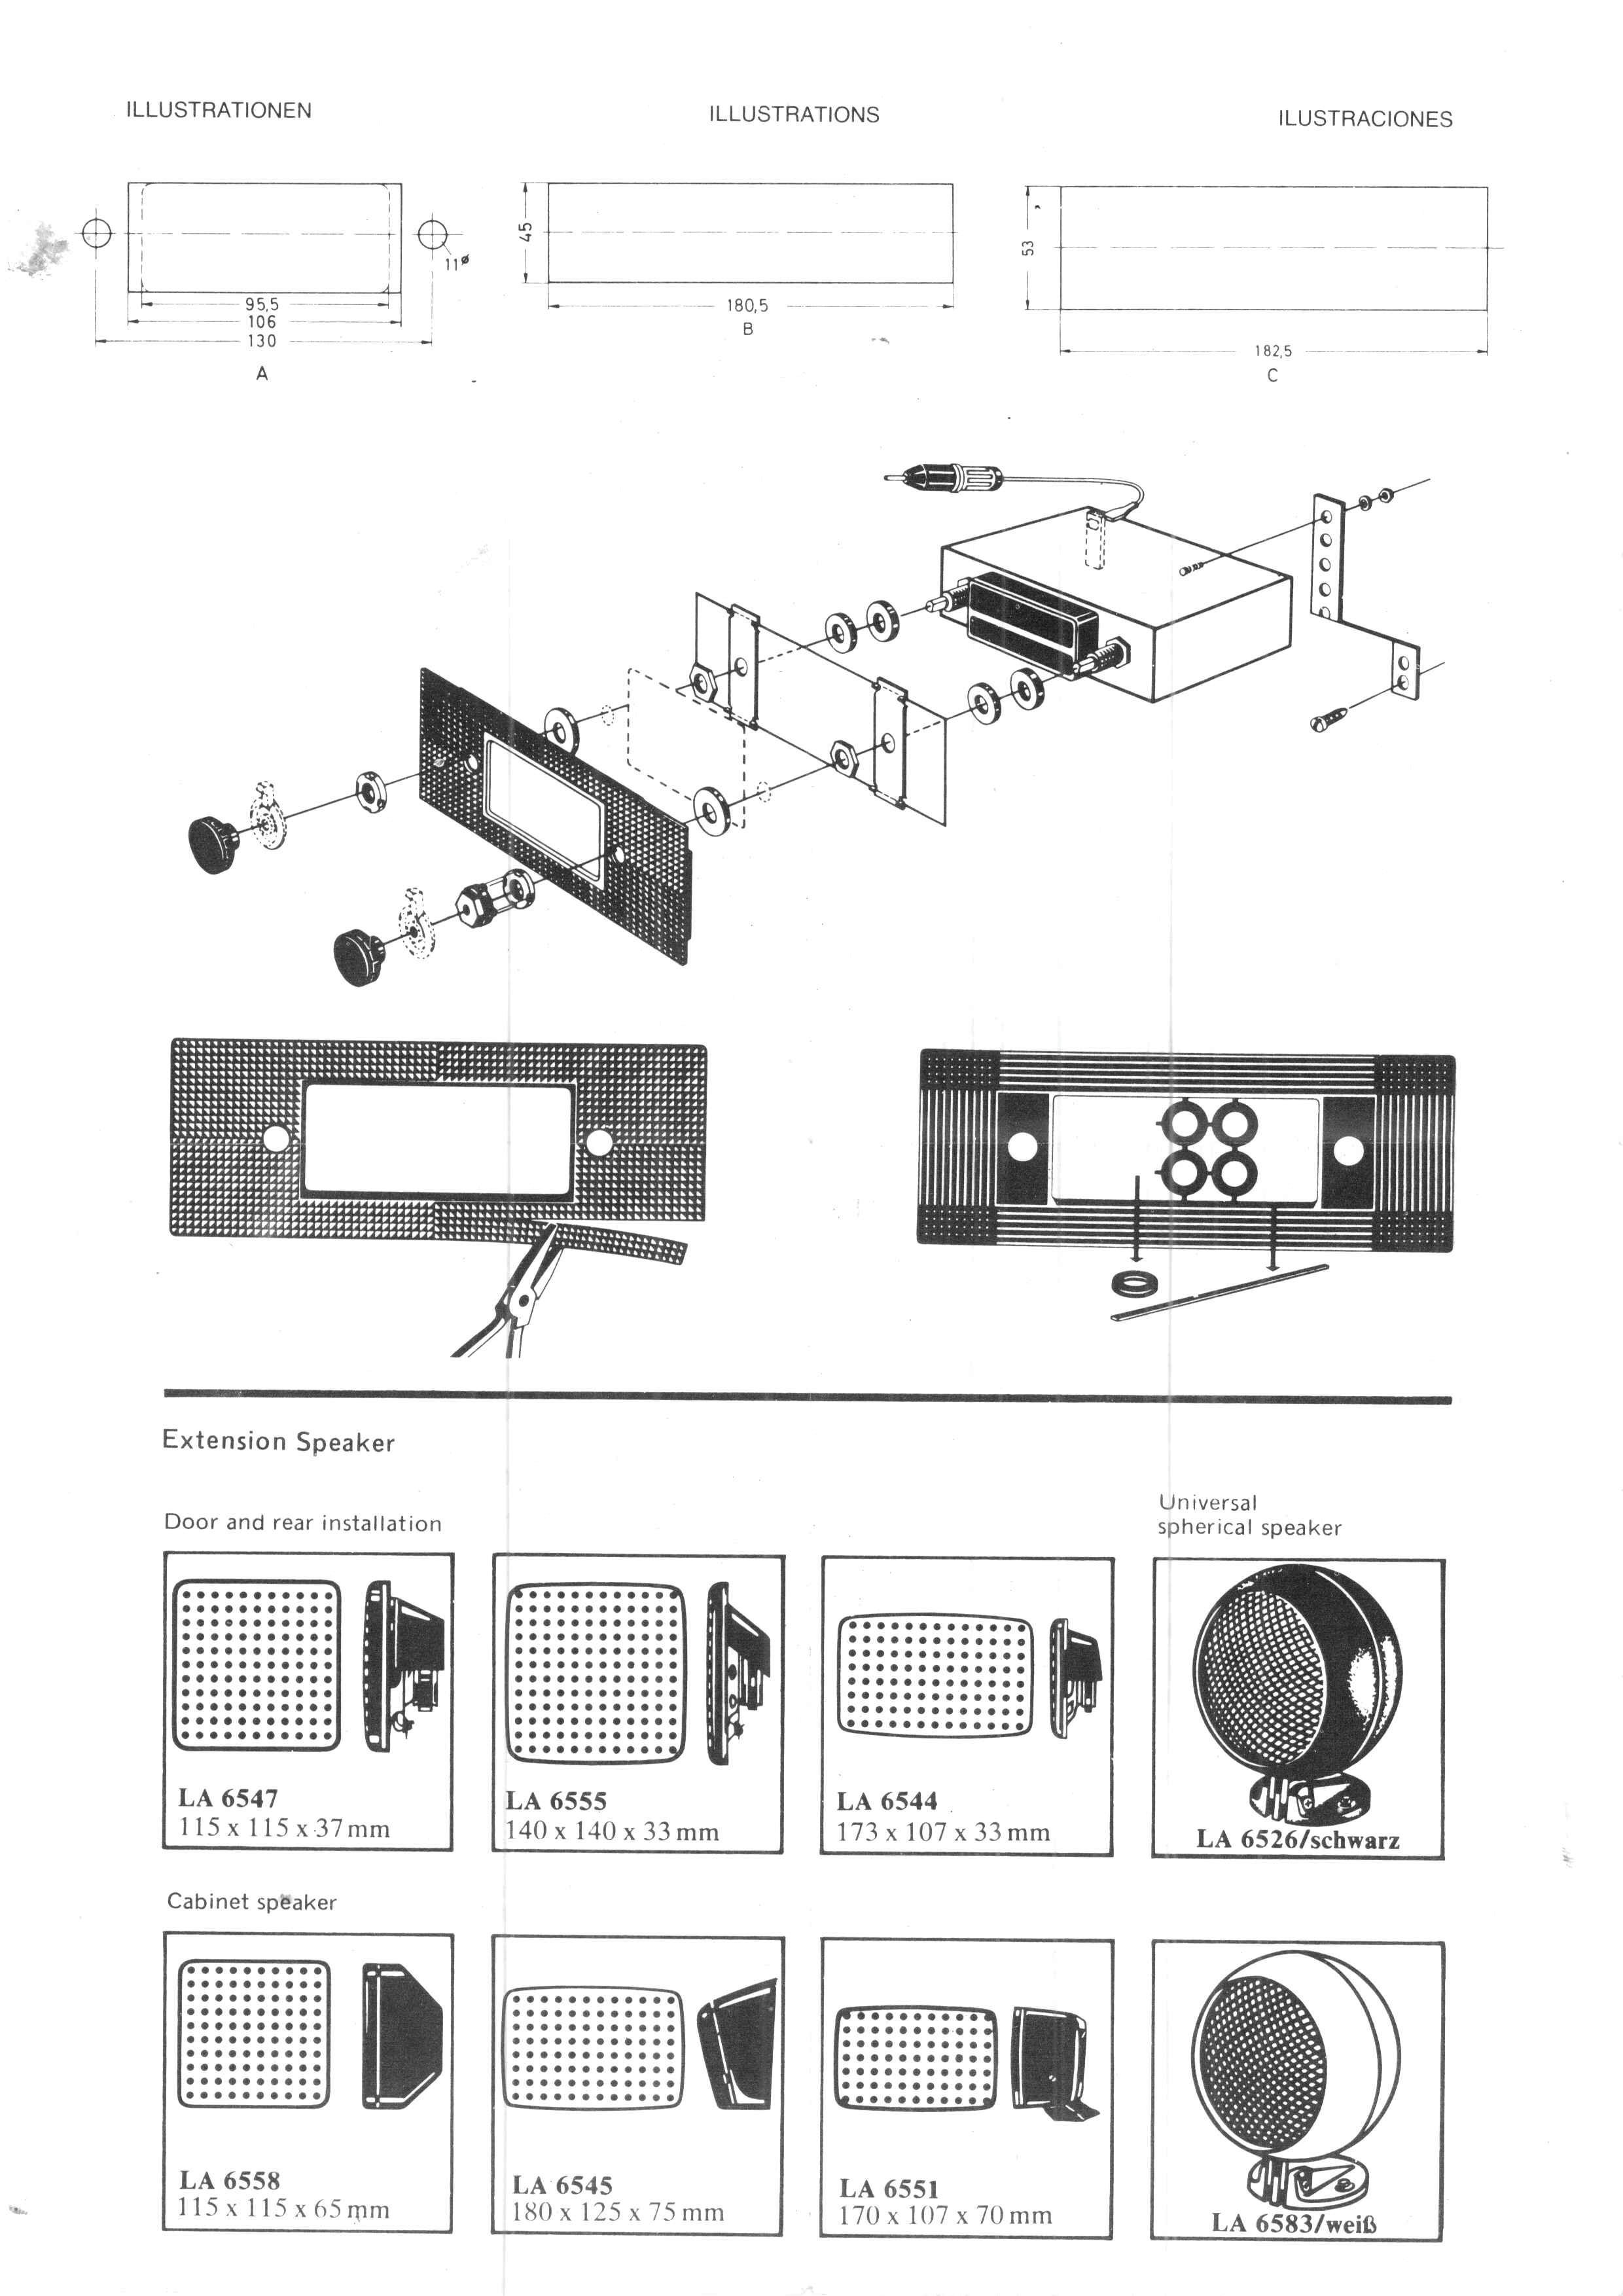 Wiring Diagram Single Phase Motor St Capacitor together with M3 Fuse Box as well Cb Radio Mike Wiring Diagram further 1957 Chevrolet Fuel Injection Wiring as well Honda S2000 Interior Fuse Box Get Free Image About. on modified fiesta mk5 vt185695